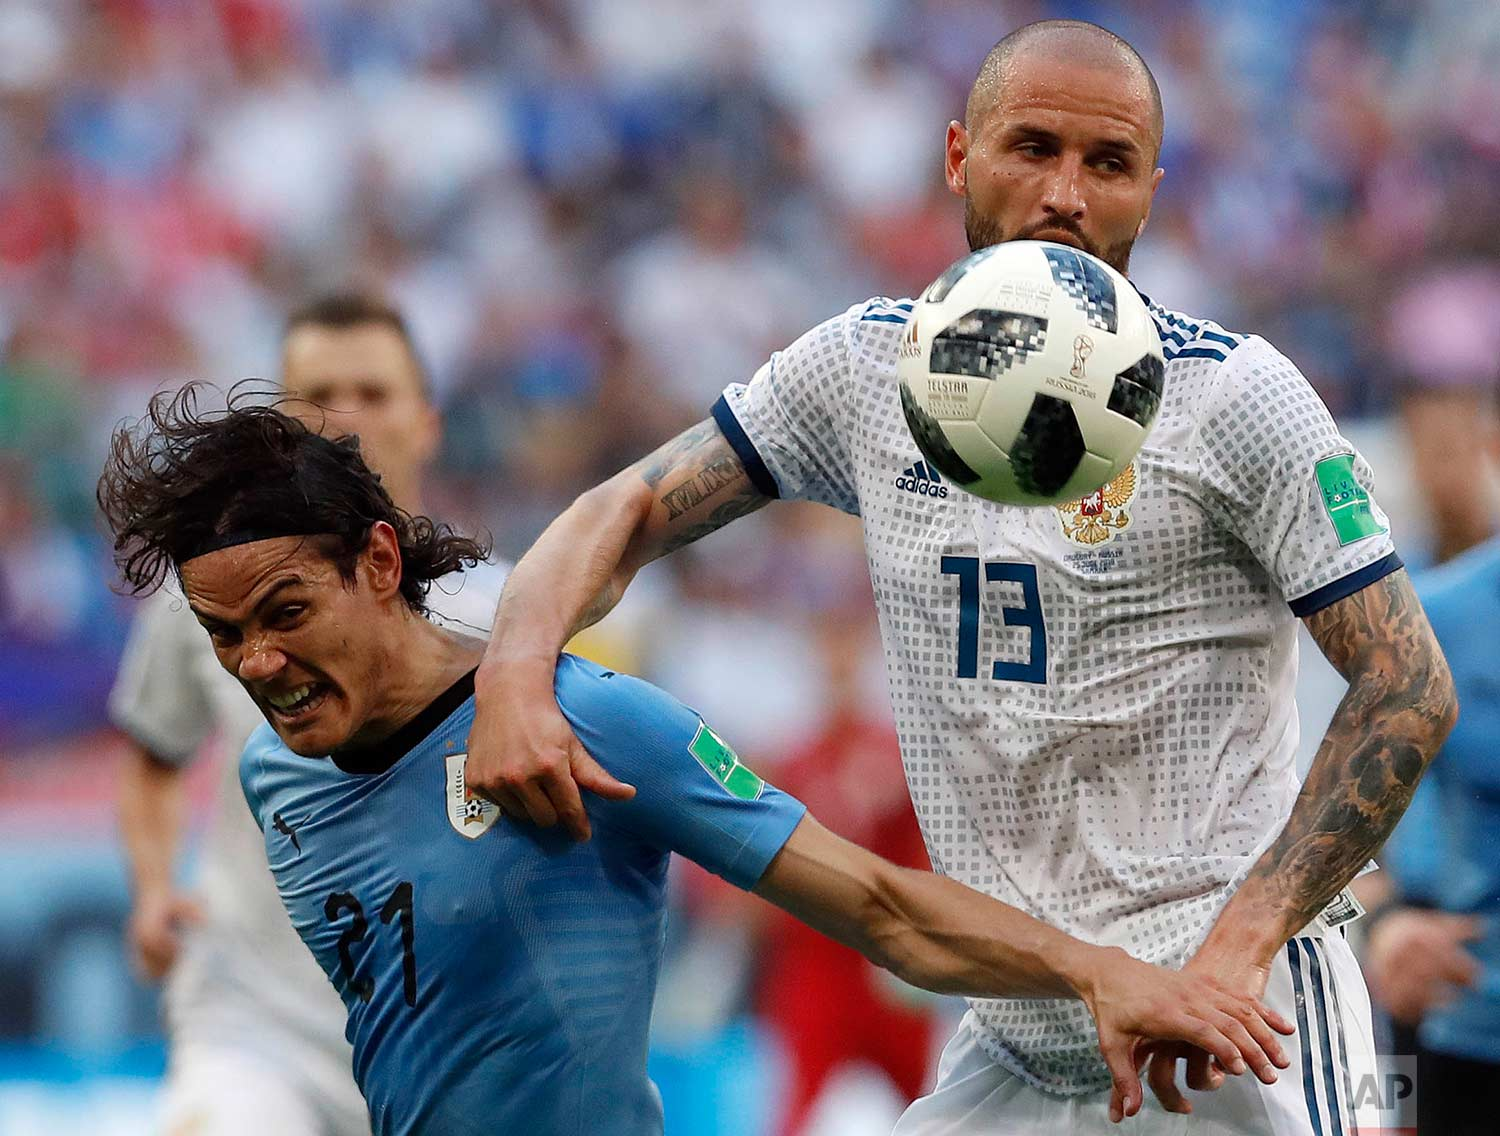 Uruguay's Edinson Cavani, left, and Russia's Fyodor Kudryashov challenge for the ball during the group A match between Uruguay and Russia at the 2018 soccer World Cup at the Samara Arena in Samara, Russia, Monday, June 25, 2018. (AP Photo/Hassan Ammar)